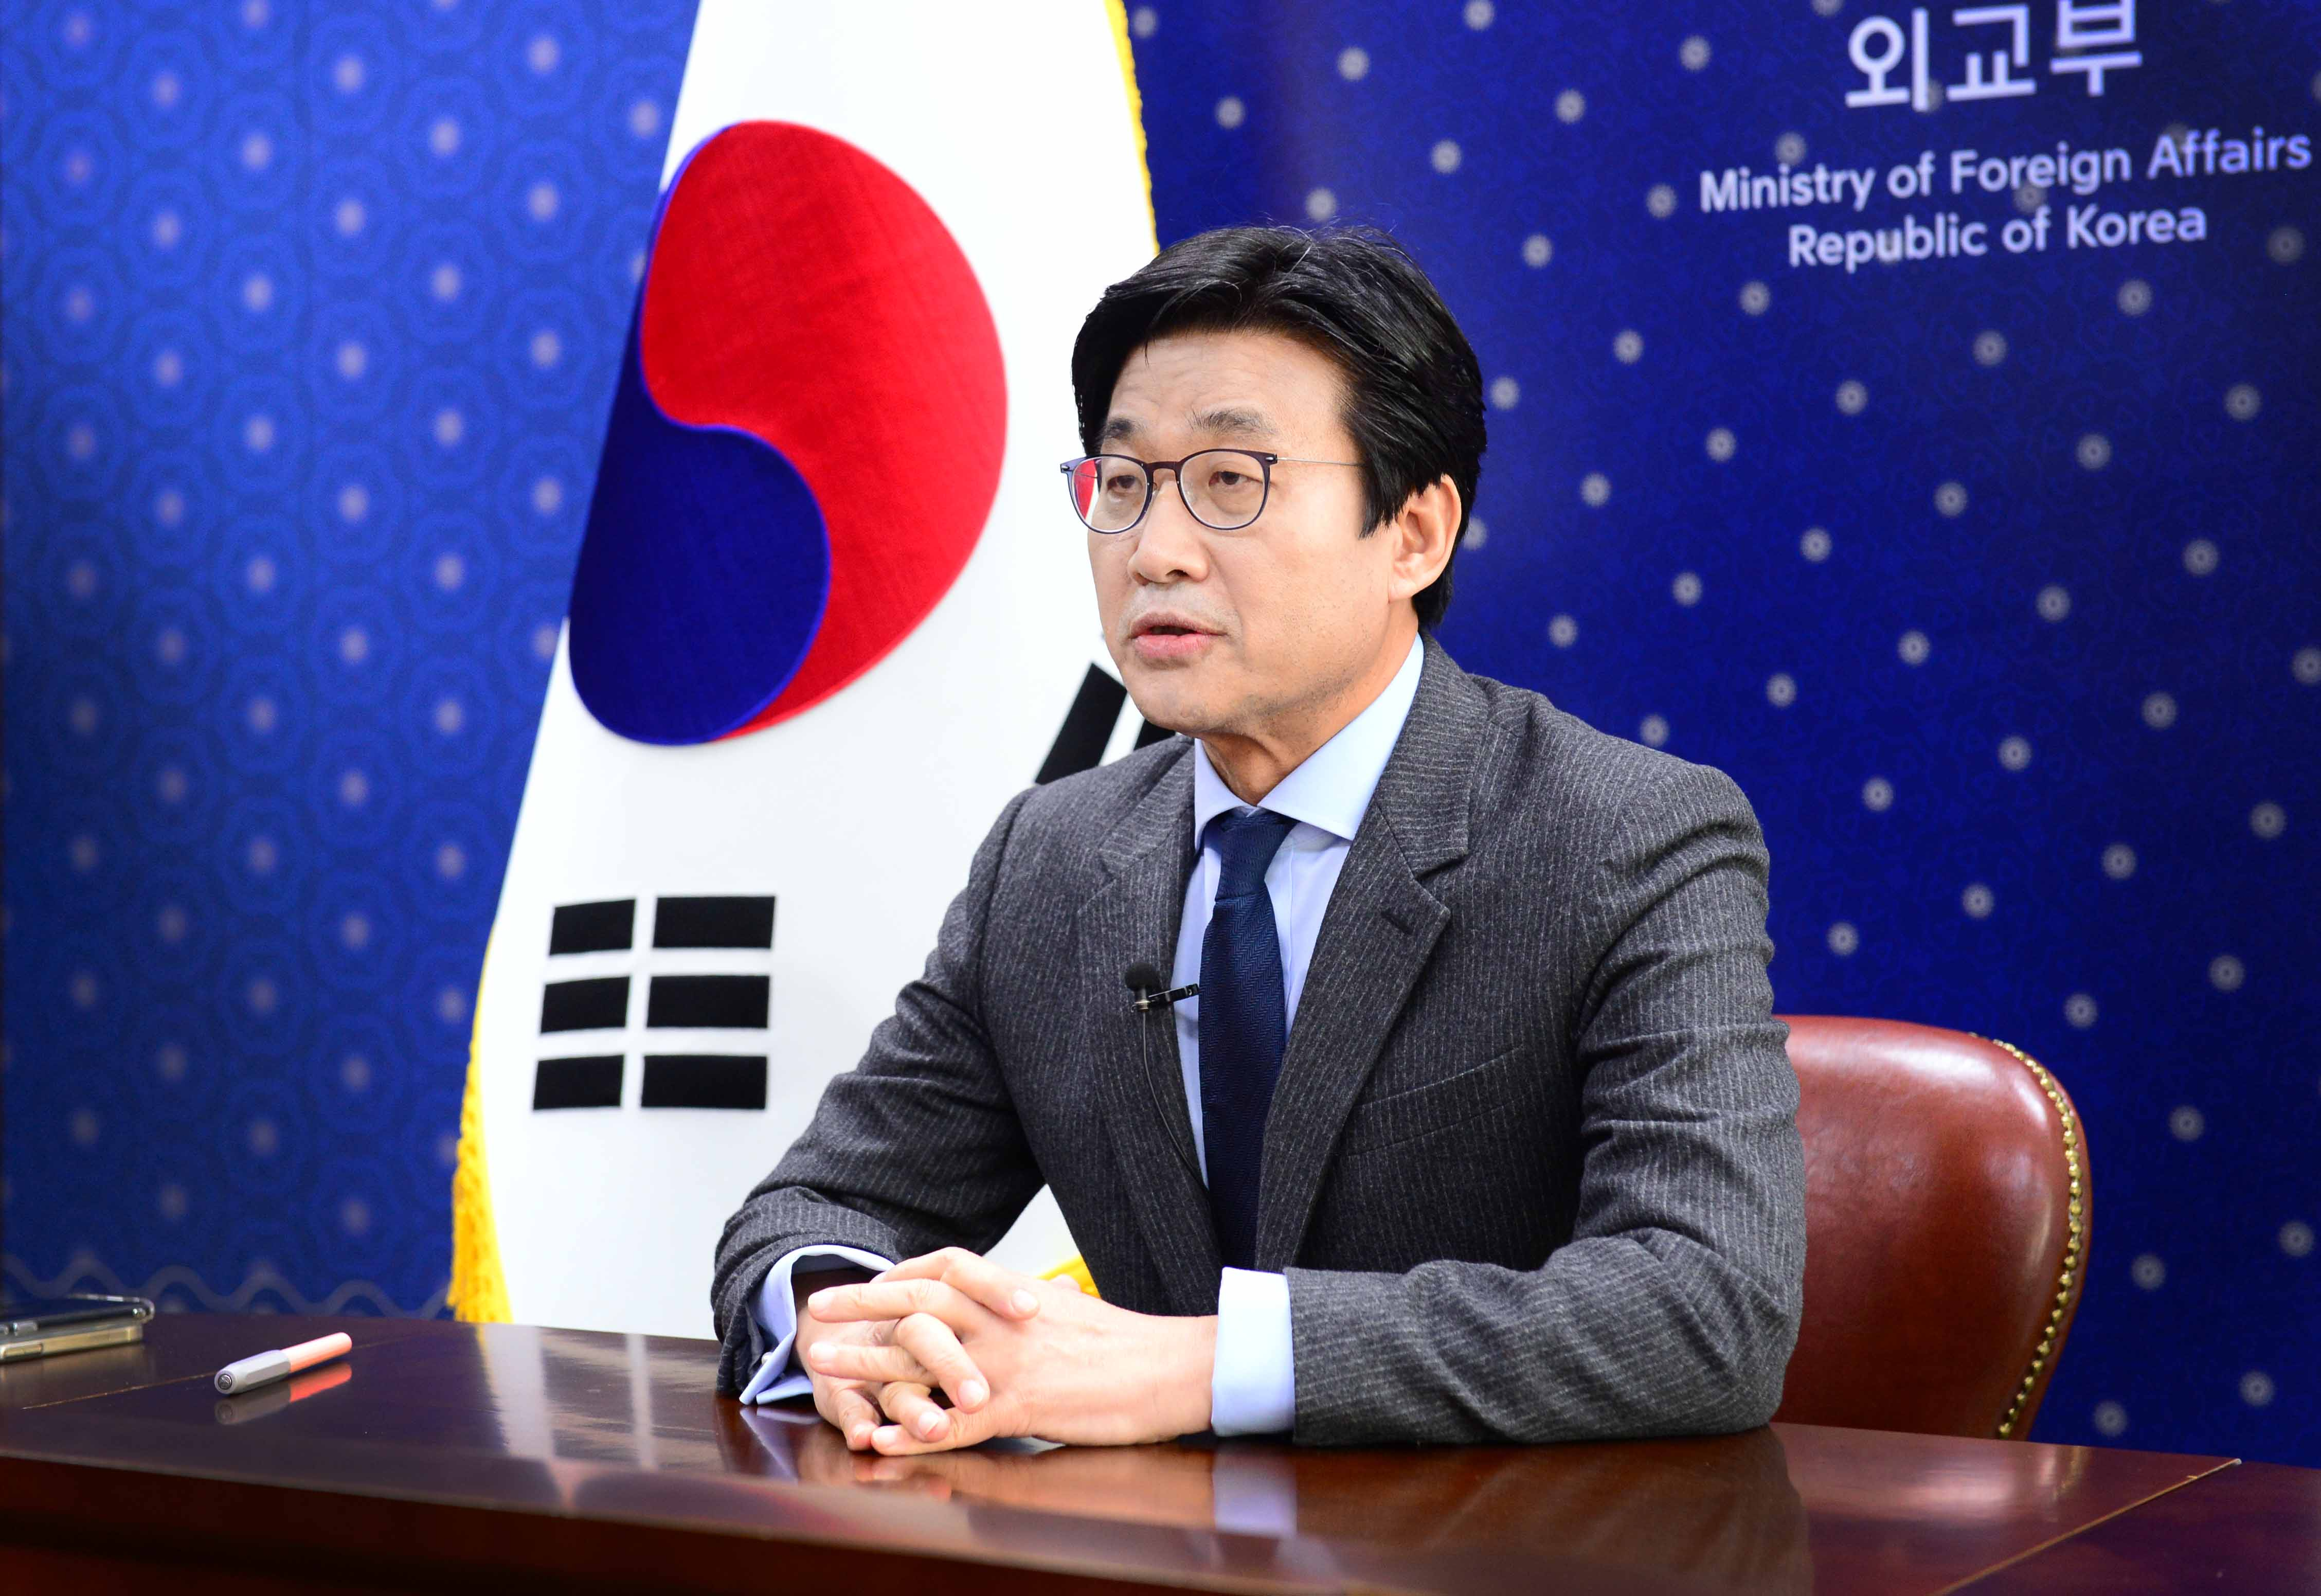 Vice Minister of Foreign Affairs Choi Jongmoon's Call with U.S. Under Secretary of State for Economic Growth, Energy and the Environment